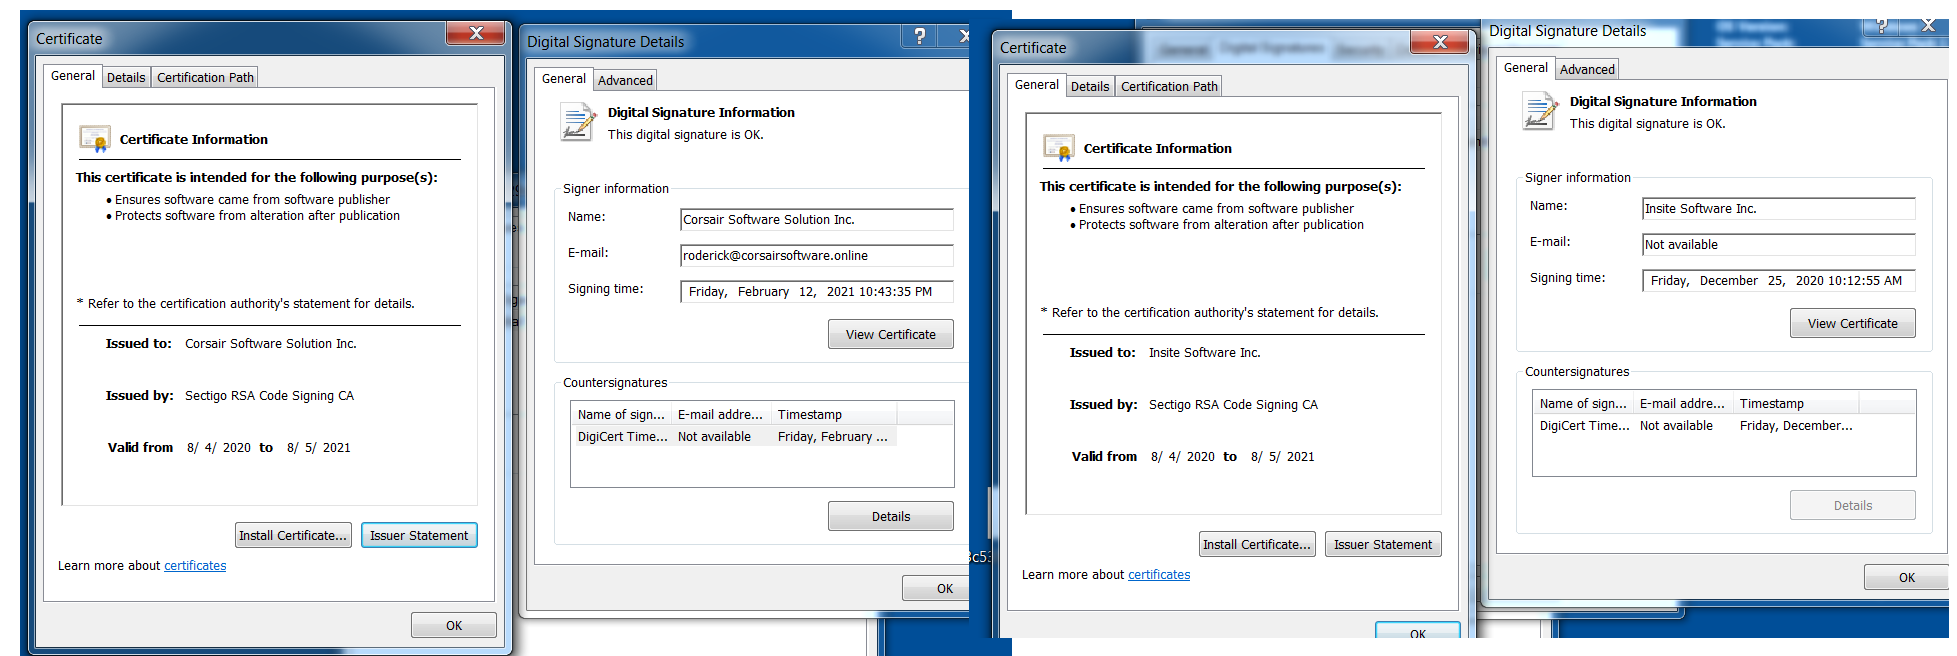 Clop ransomware leverages code signing to evade detection. The image shows two signers we observed in our research.